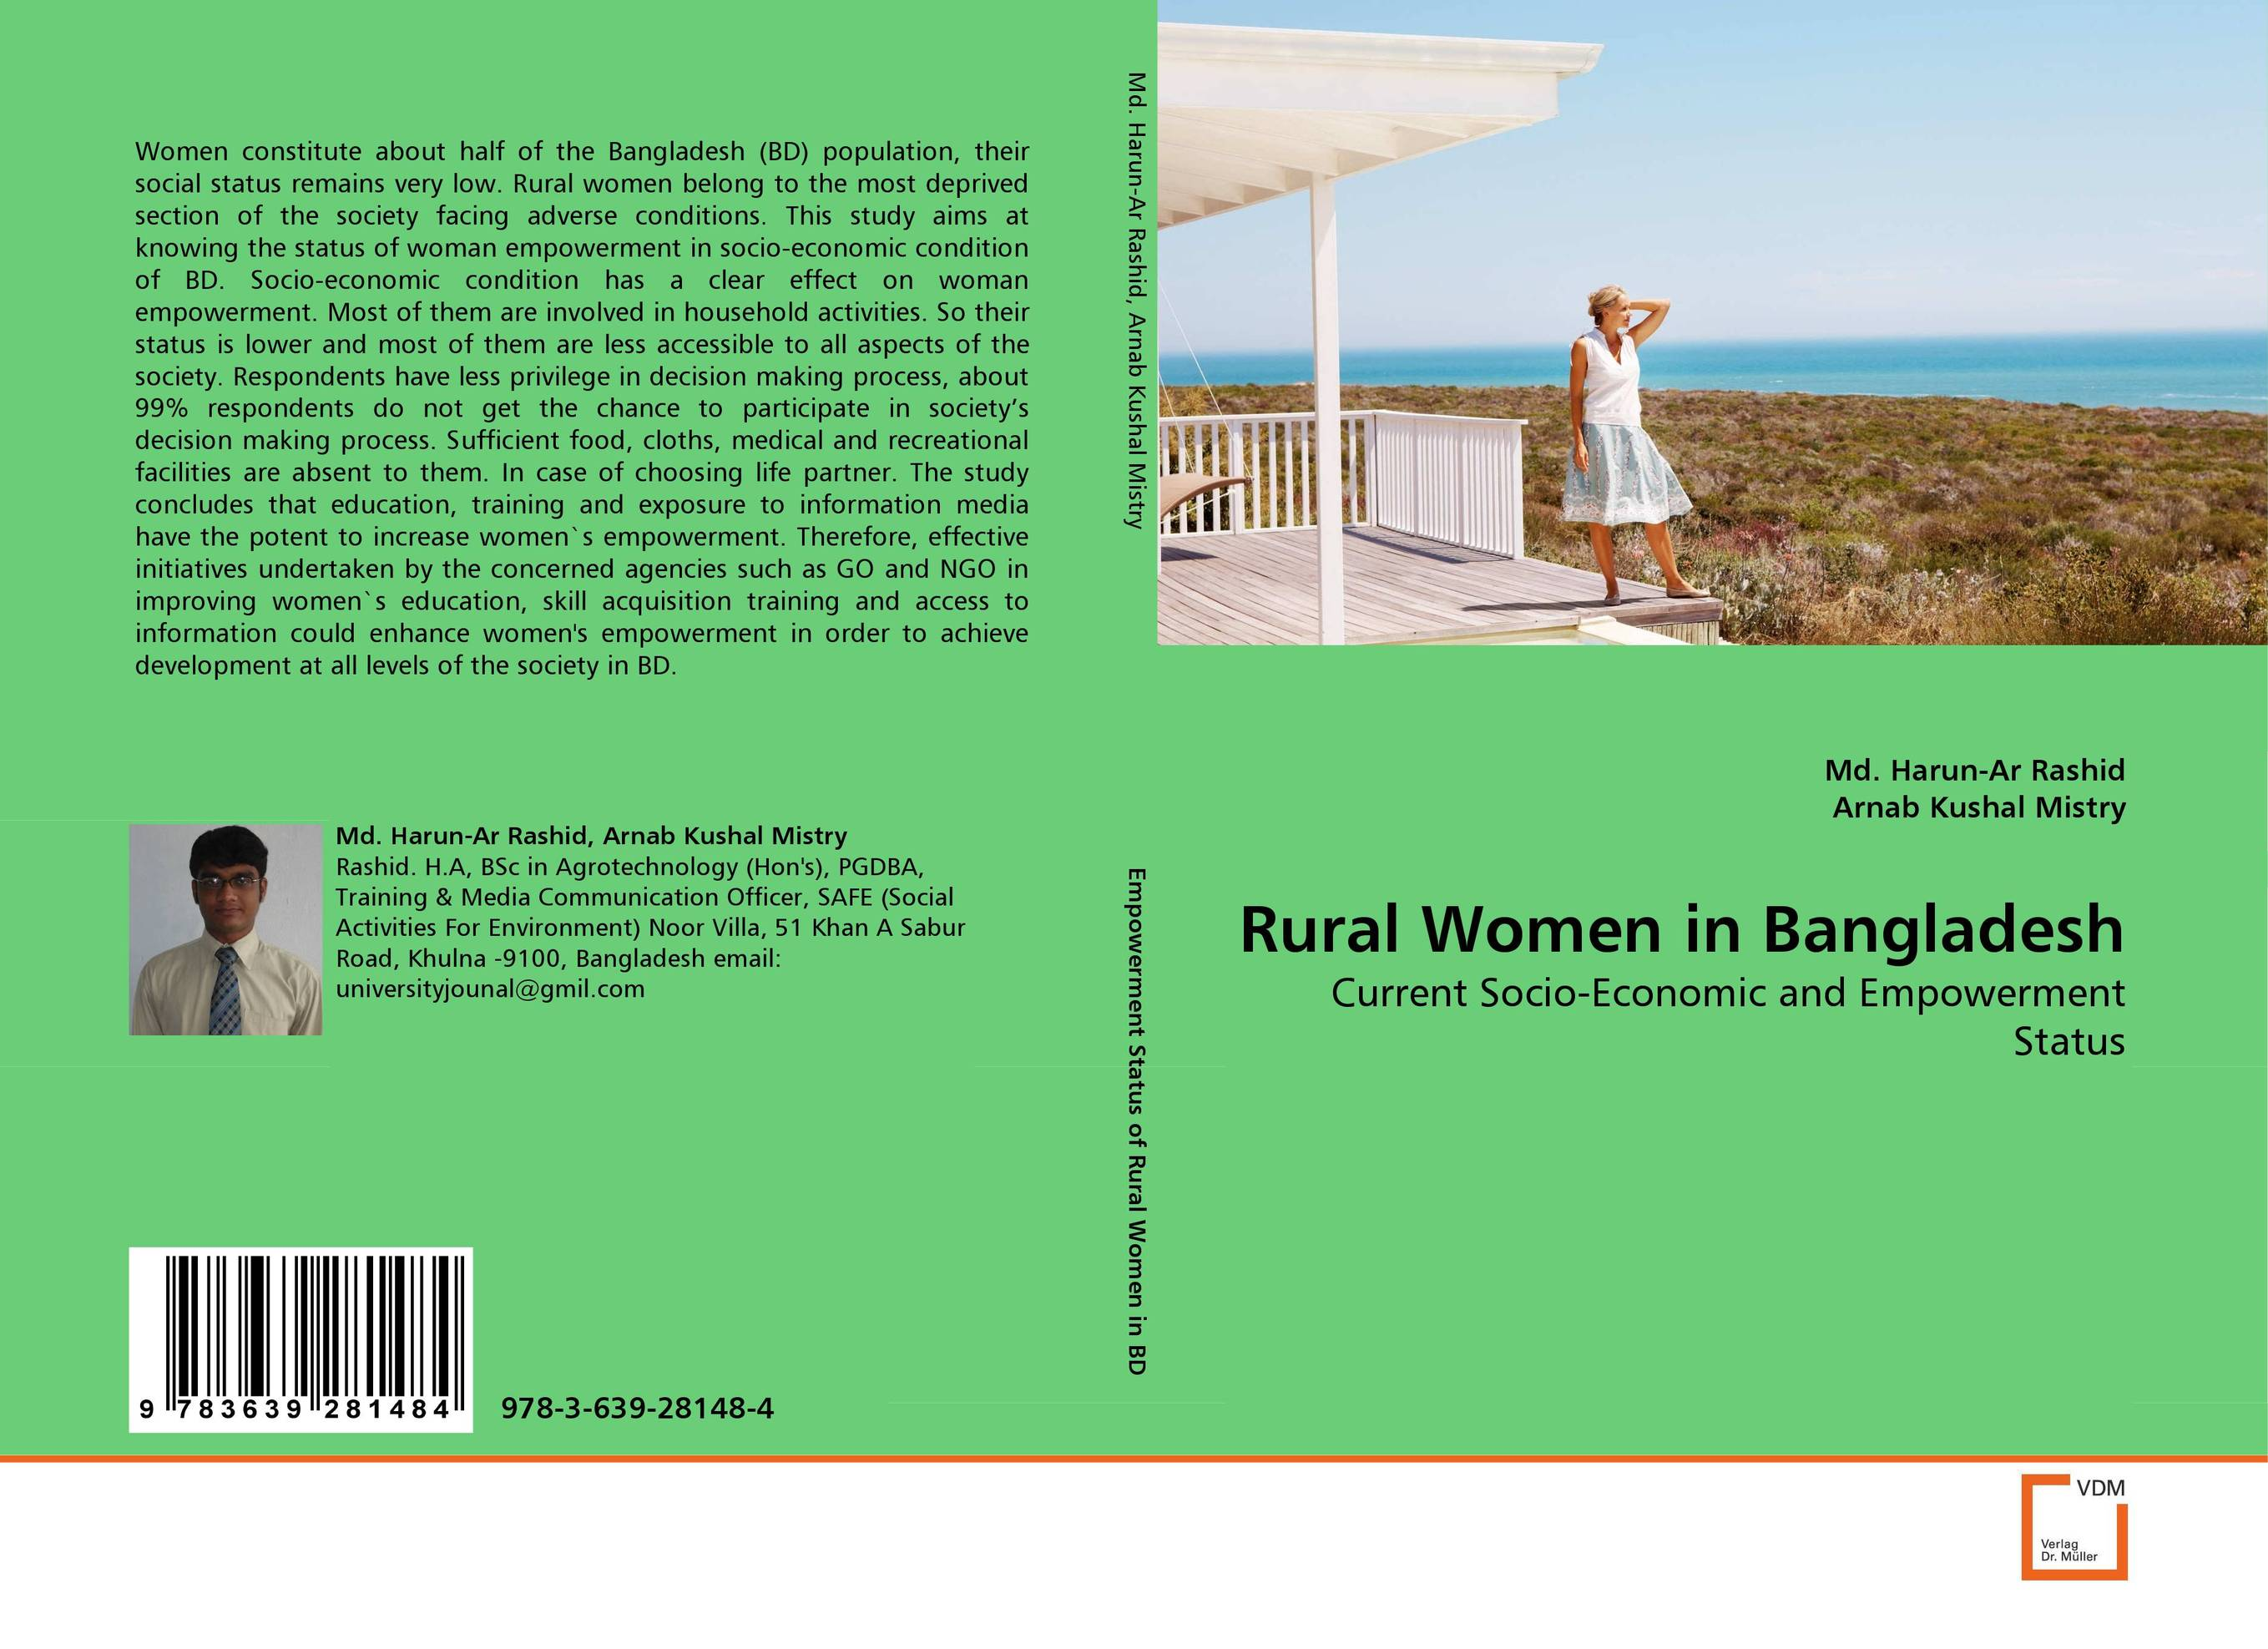 a socio economic study on rural women Raphael avornyo journal of global initiatives volume 8, nos 1 & 2, 2013, pp103-120 rural women's role in the socio-economic growth and well-being of ghana: a case study of women.